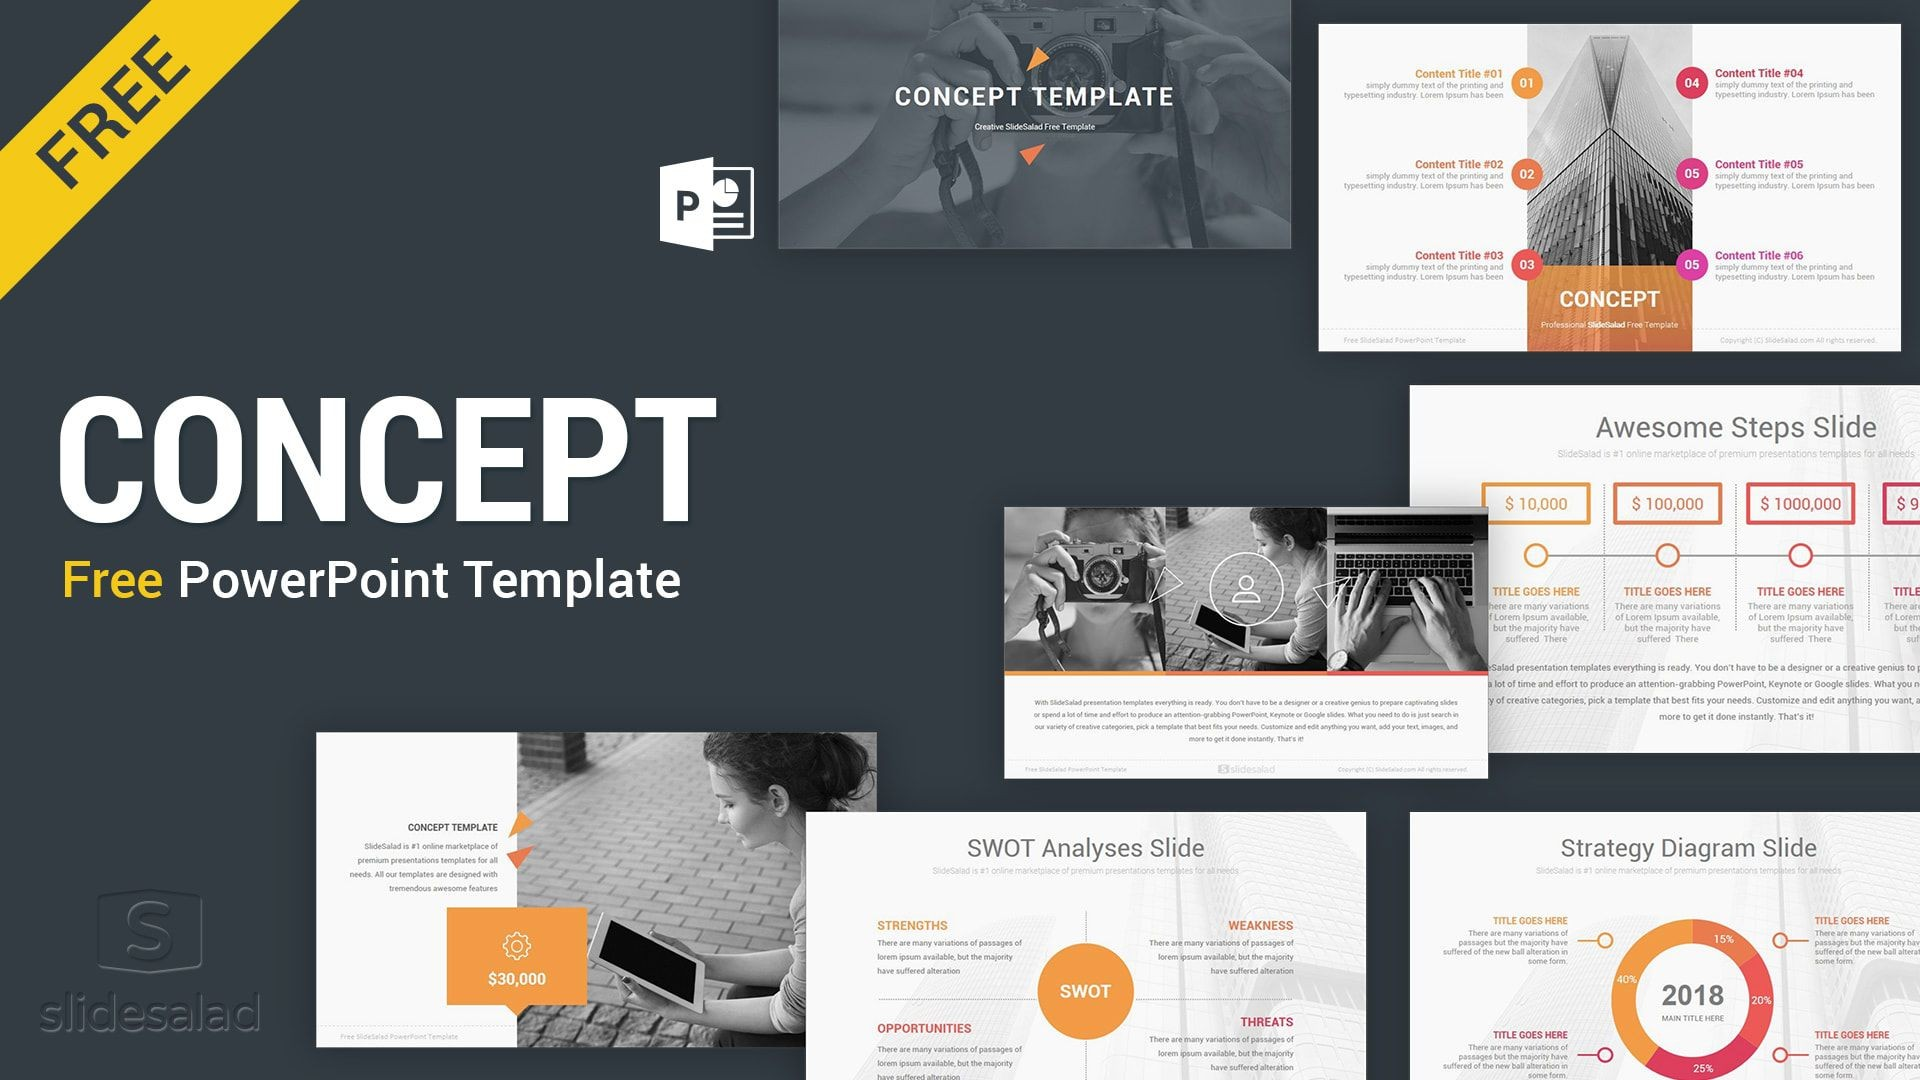 005 Awful Free Powerpoint Presentation Template Image  Templates 22 Slide For The Perfect Busines Strategy Download Engineering1920